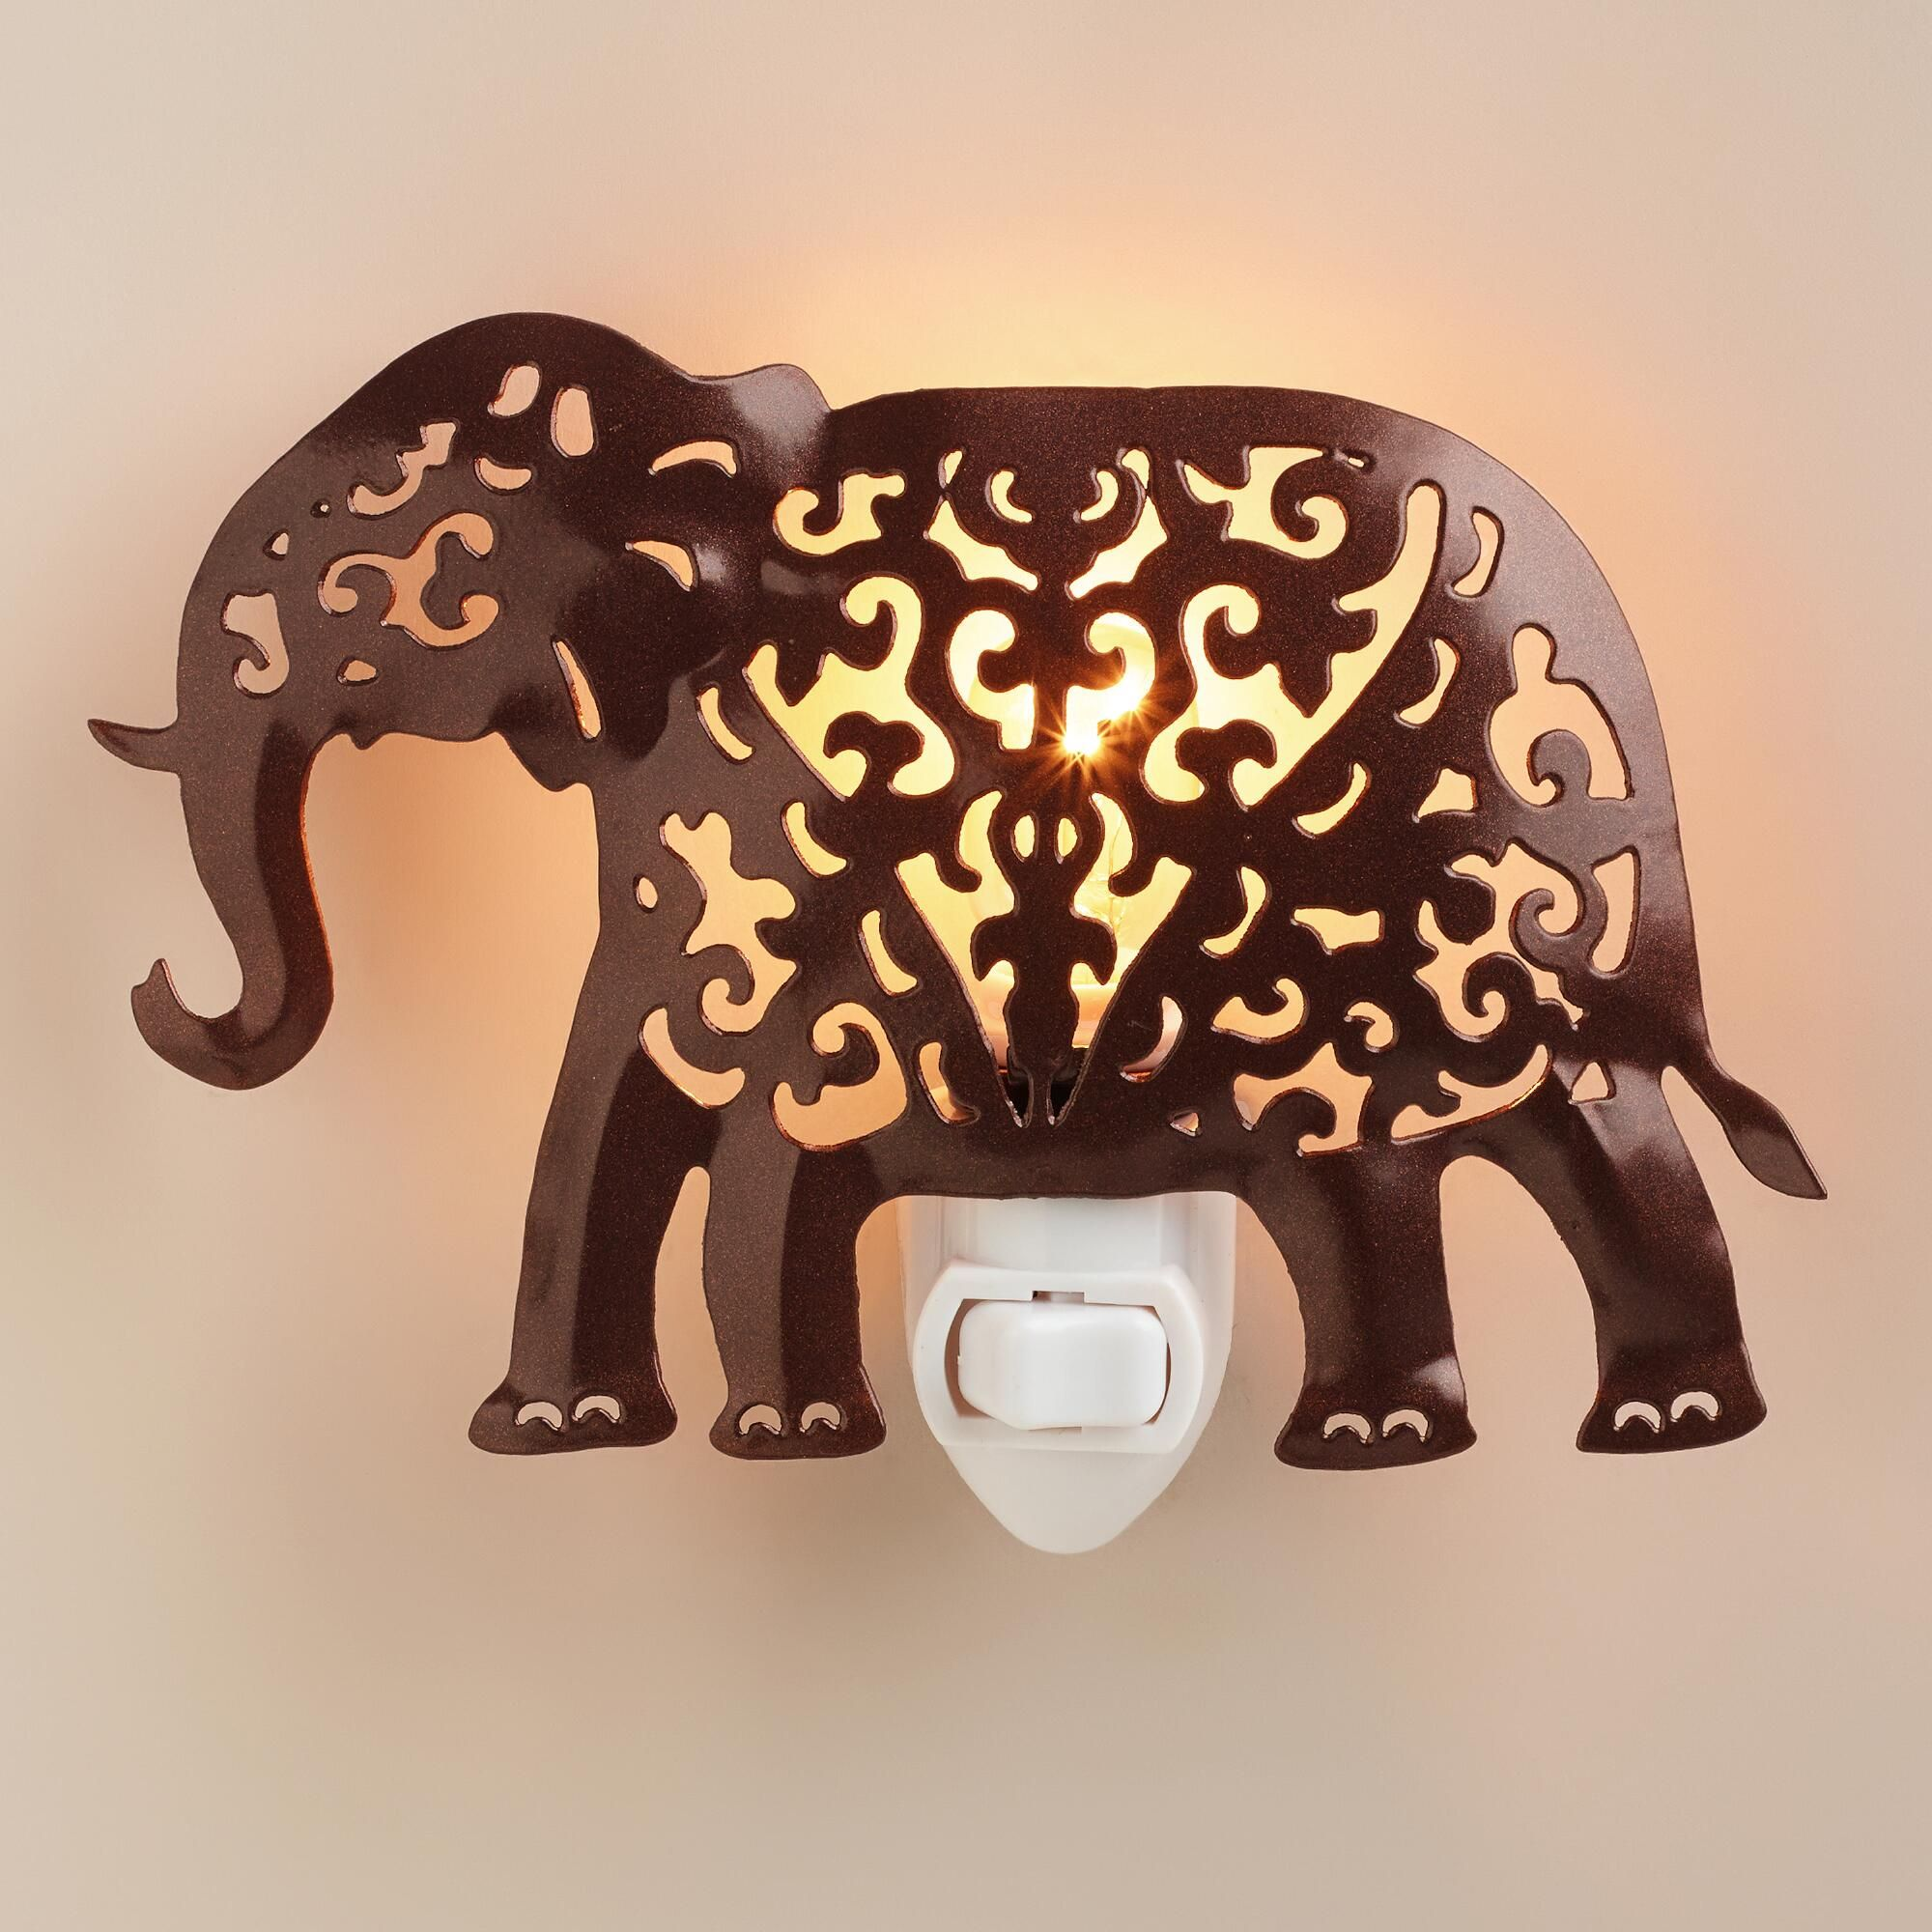 Stacked elephant lamp - Handcrafted In India With An Intricate Cutout Design Our Whimsical Elephant Shaped Night